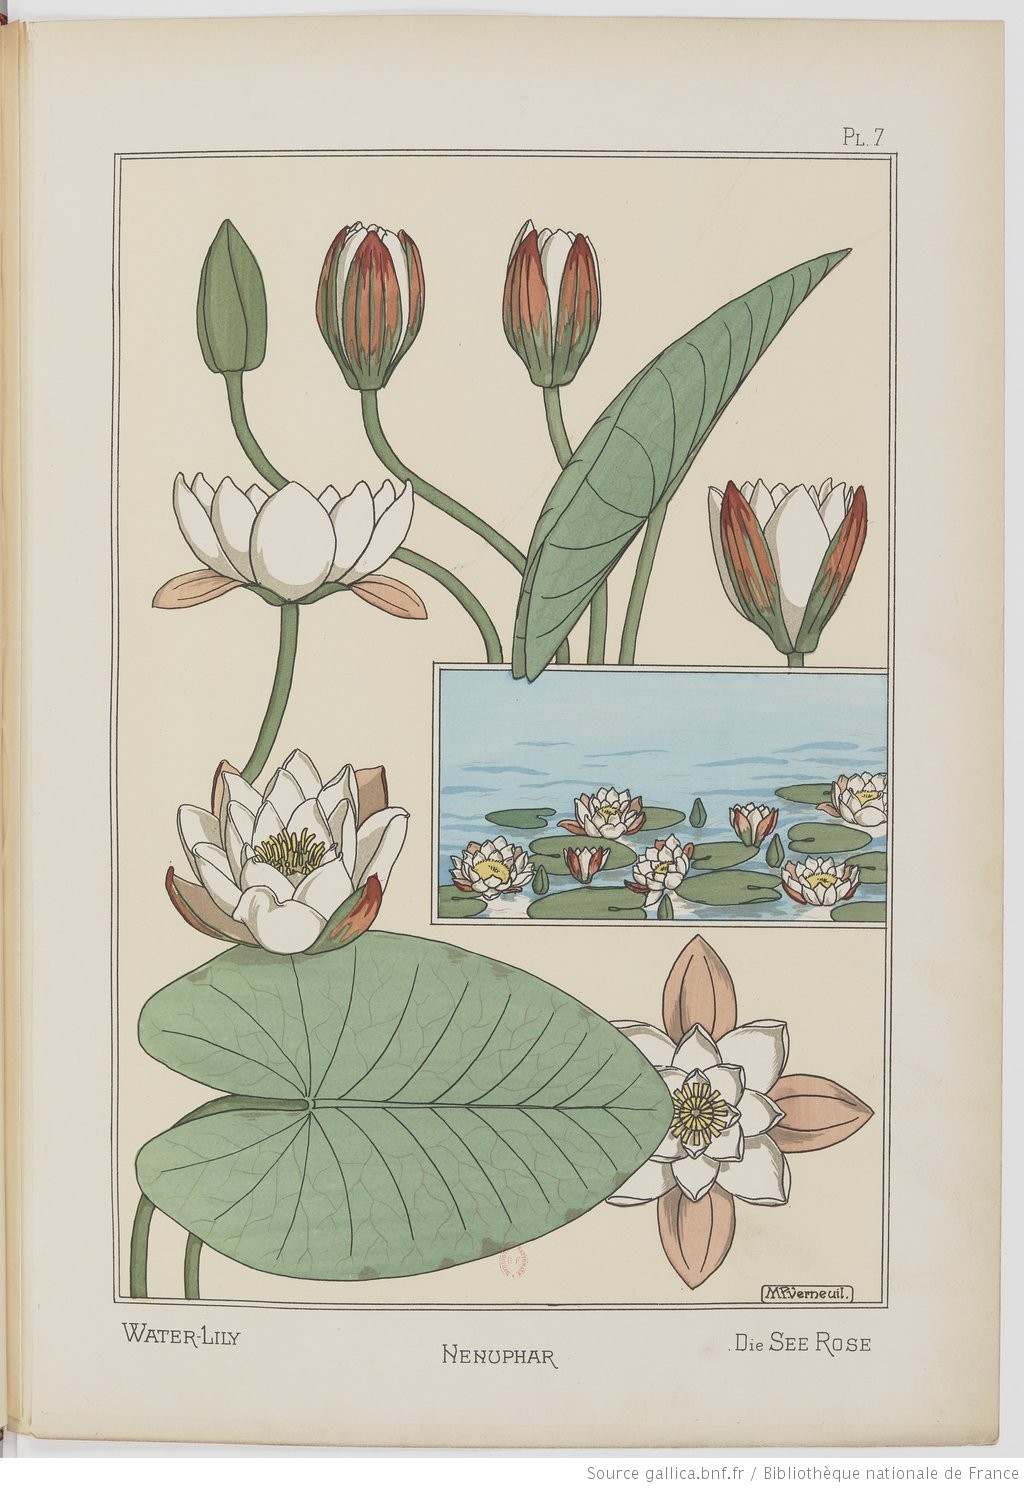 Waterlily. Image 18. Plate VII.